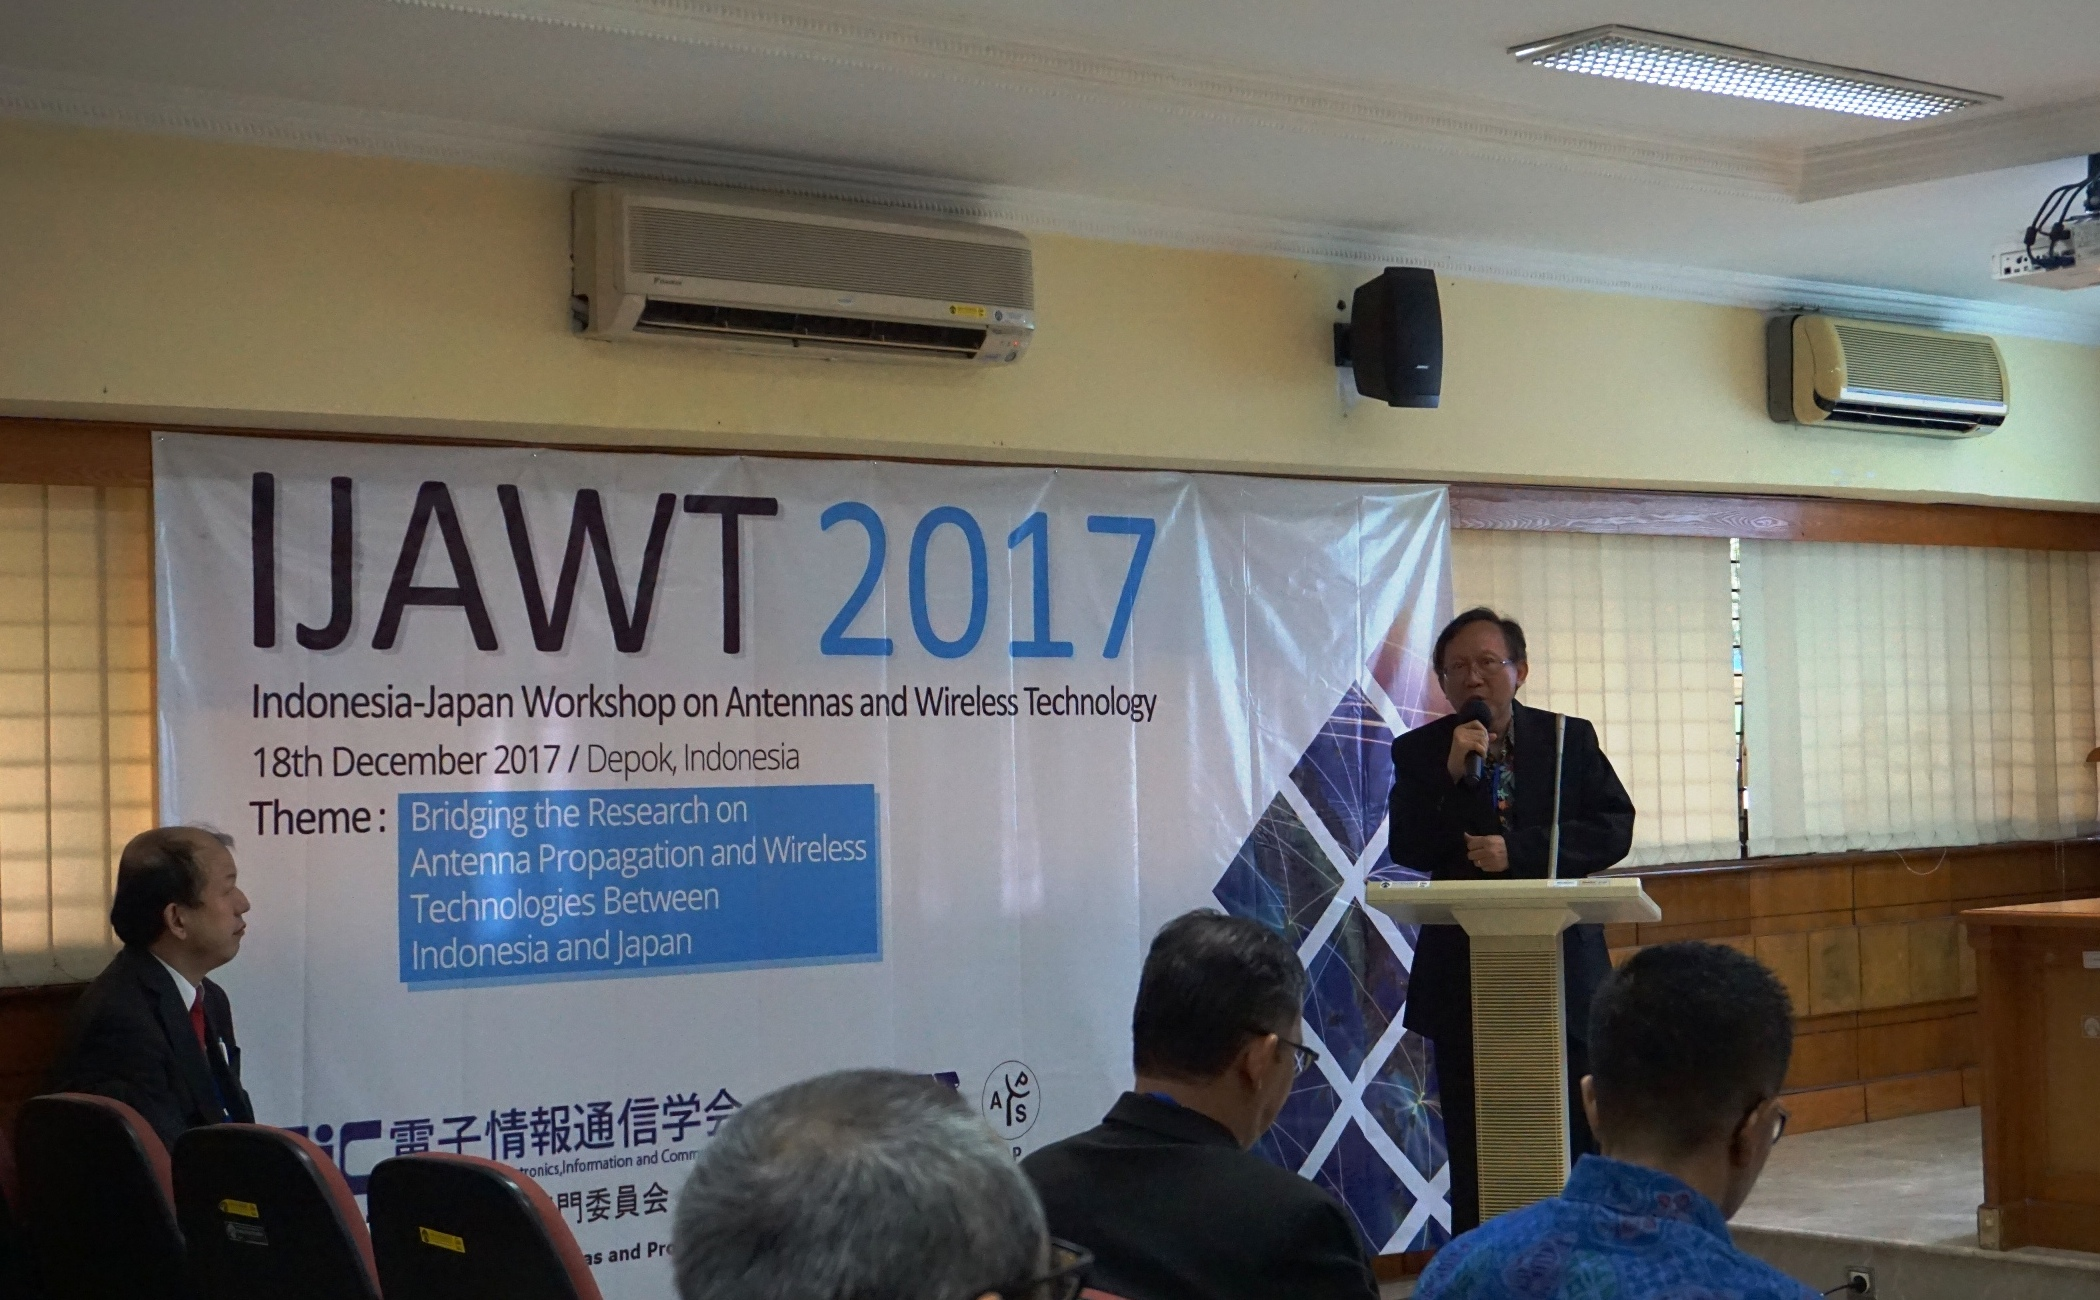 Indonesia Japan Workshop on Antennas and Wireless Technology (IJAWT2017)